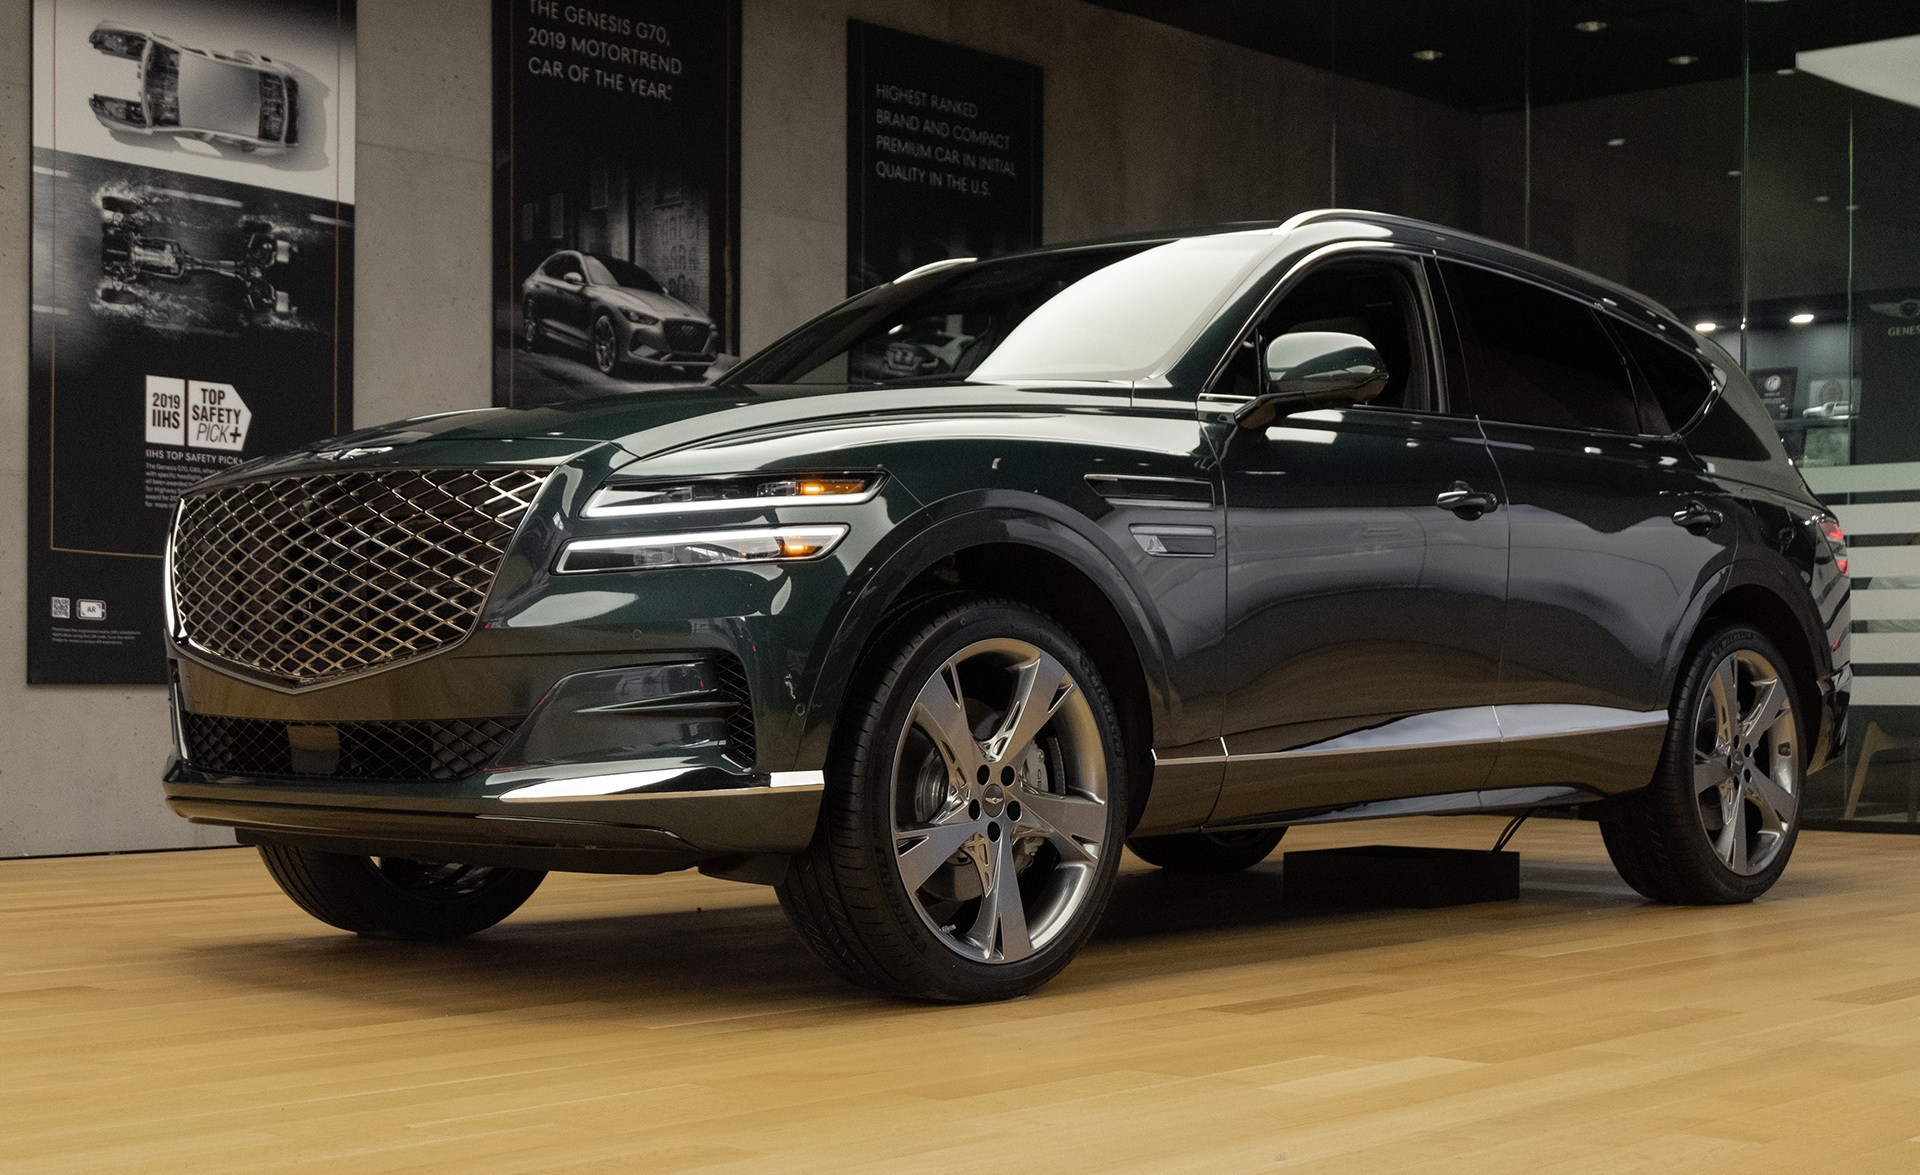 2021 Genesis Gv80 Preview Hands On With The New Luxury Suv Autoguide Com News